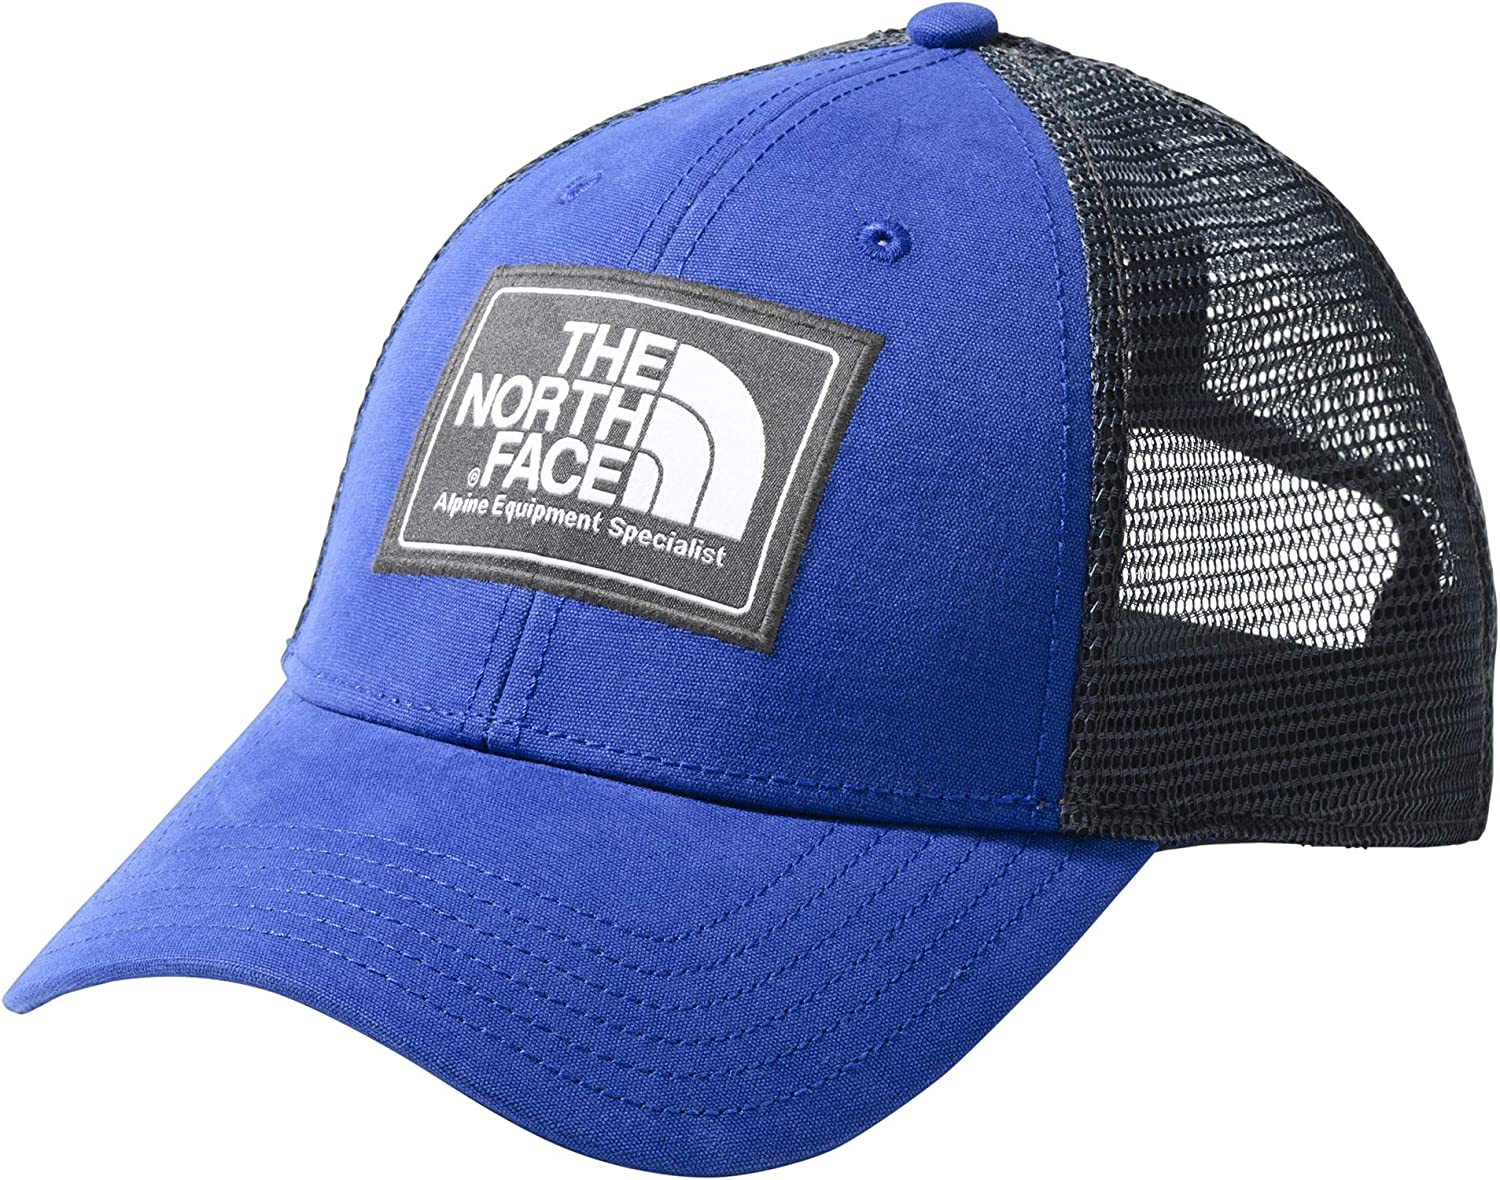 The North Face Unisex Trucker Hat